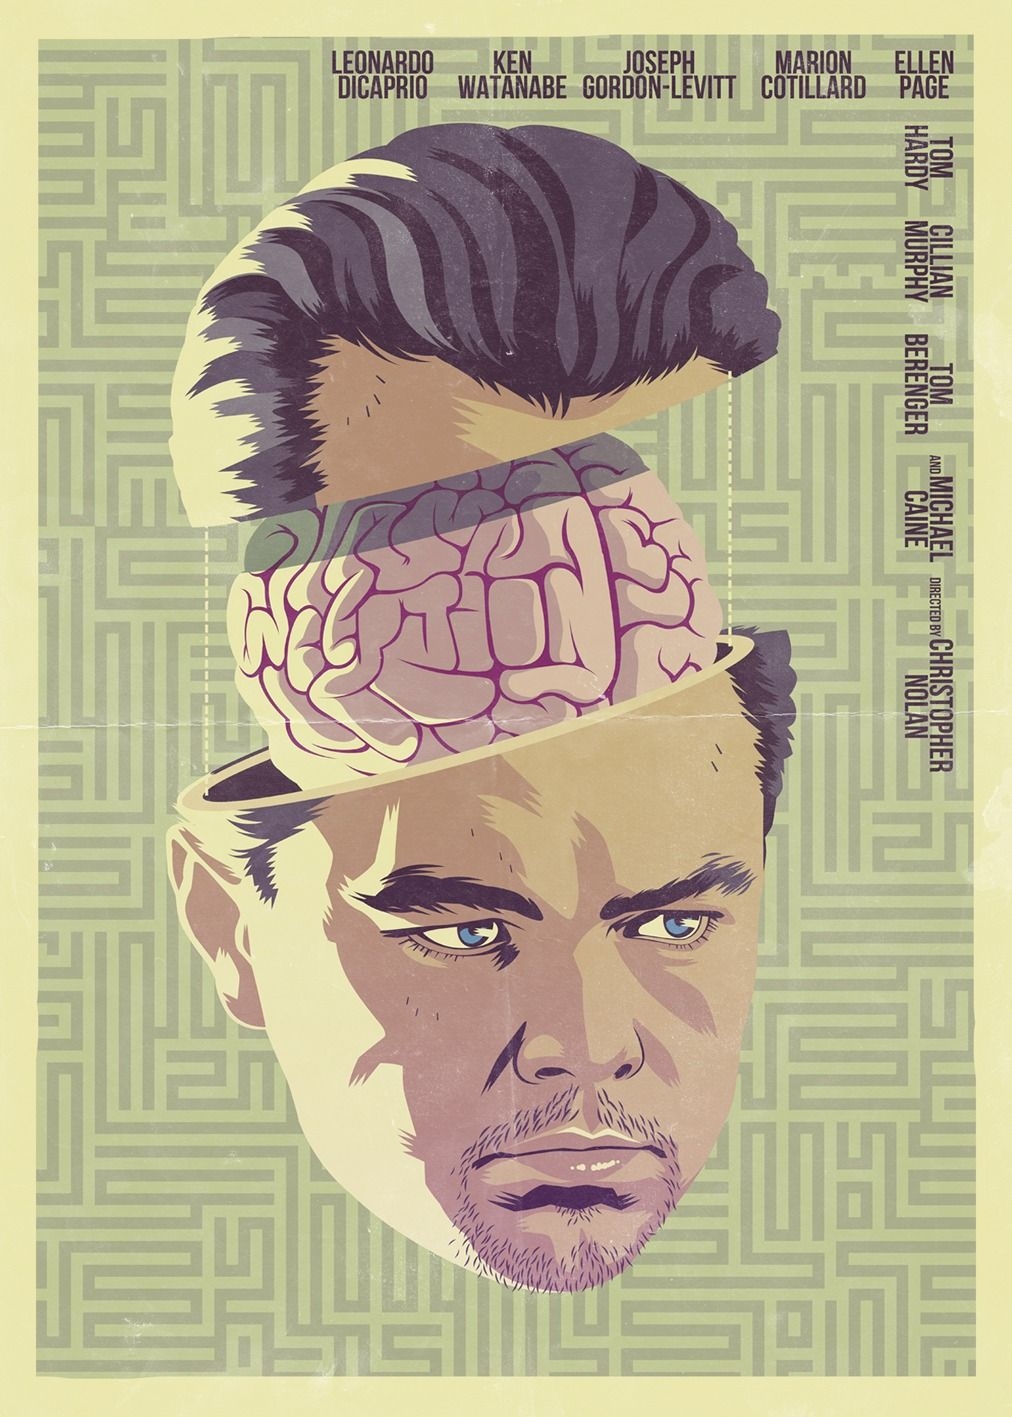 Fanposter for inception excellent illustrations by mike